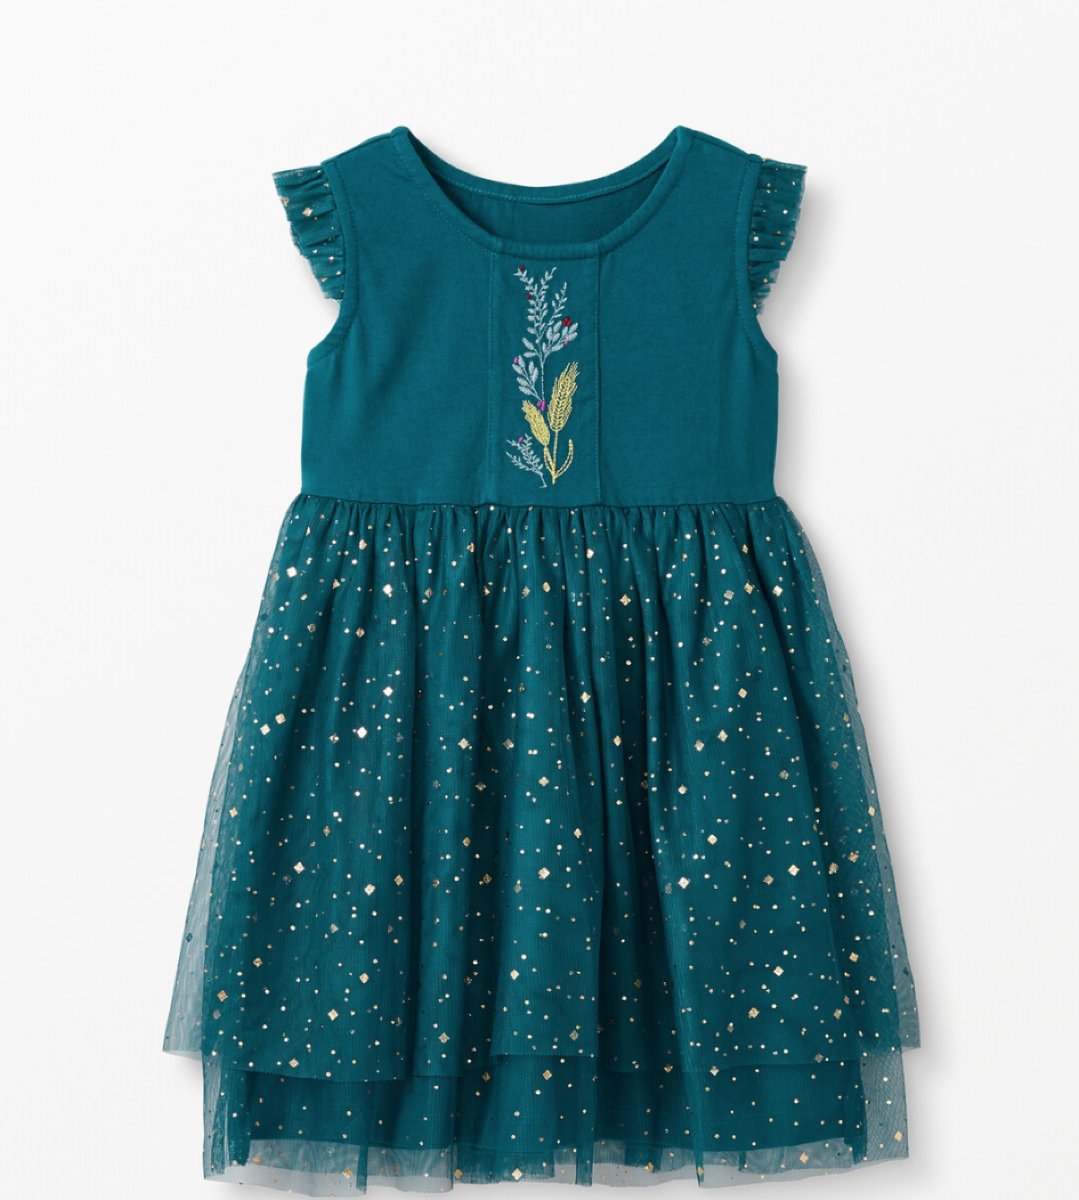 green dress with gold sparkles